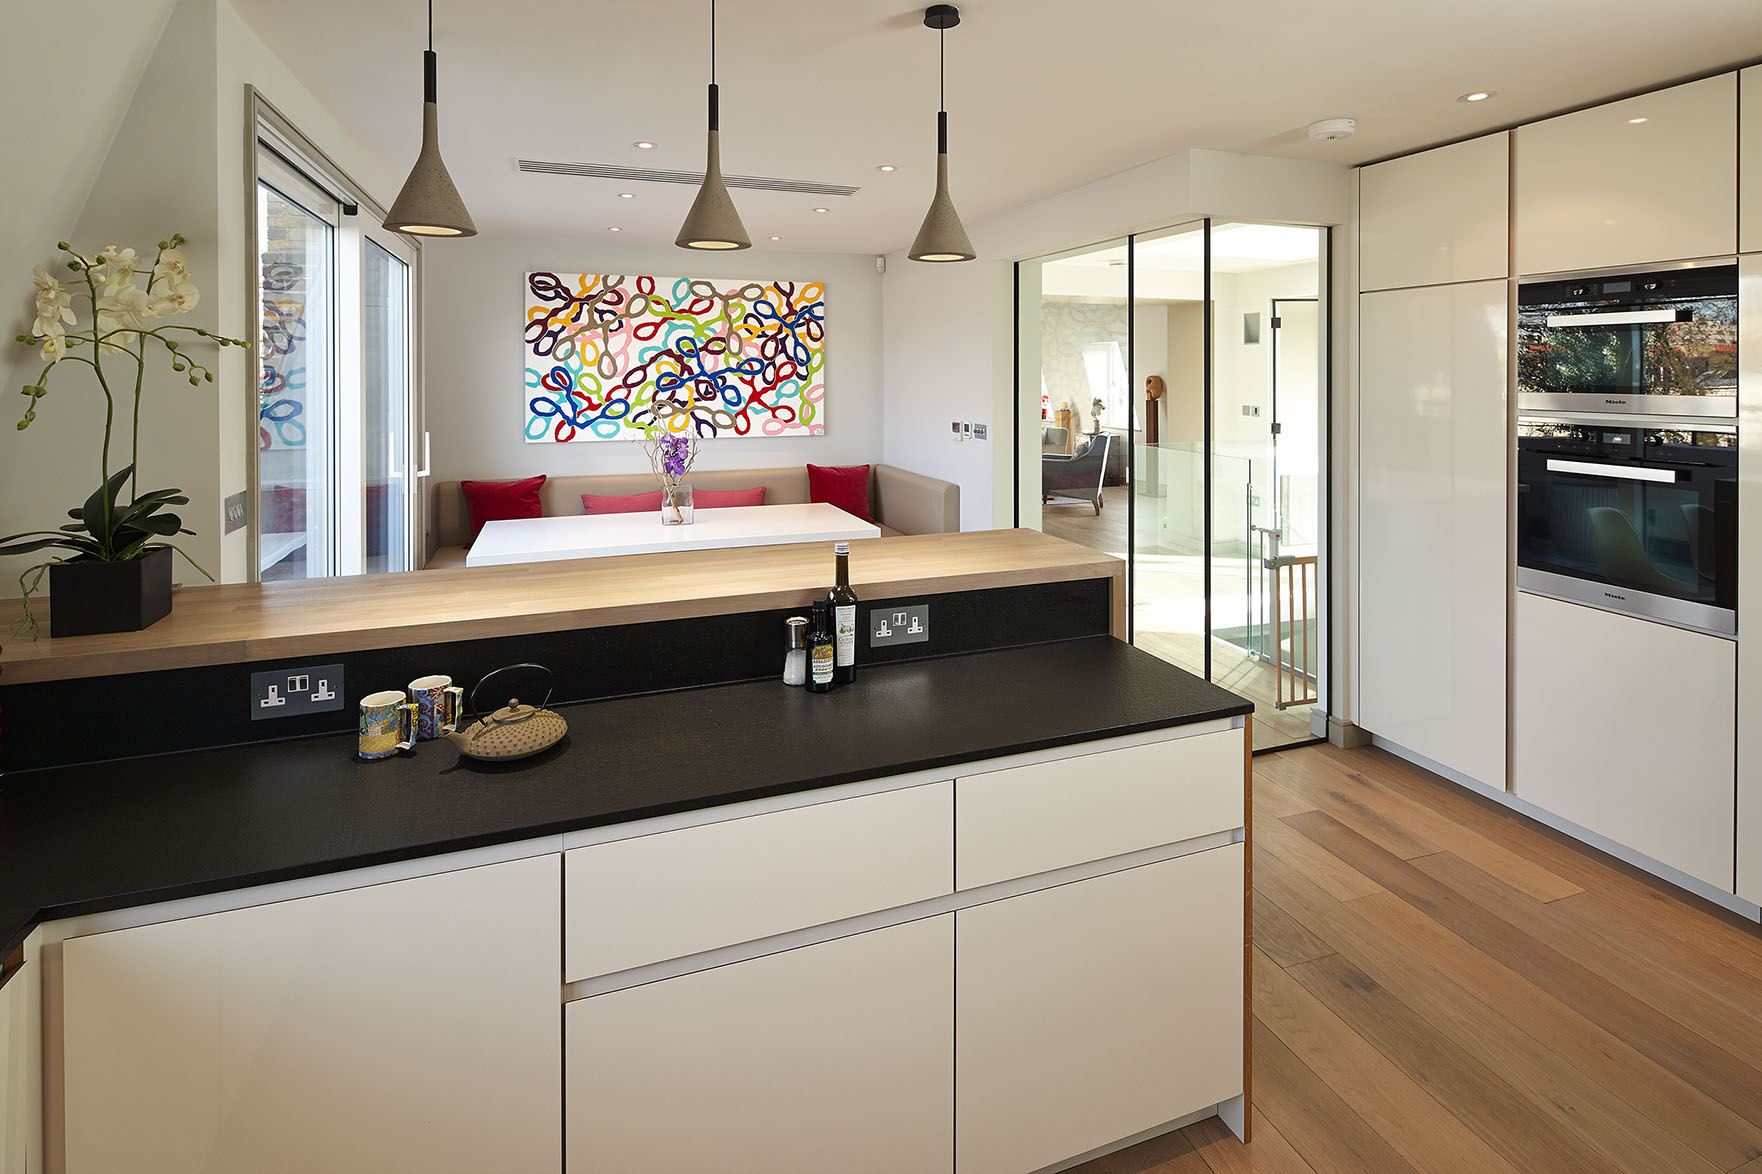 A finished kitchen project in Fulham